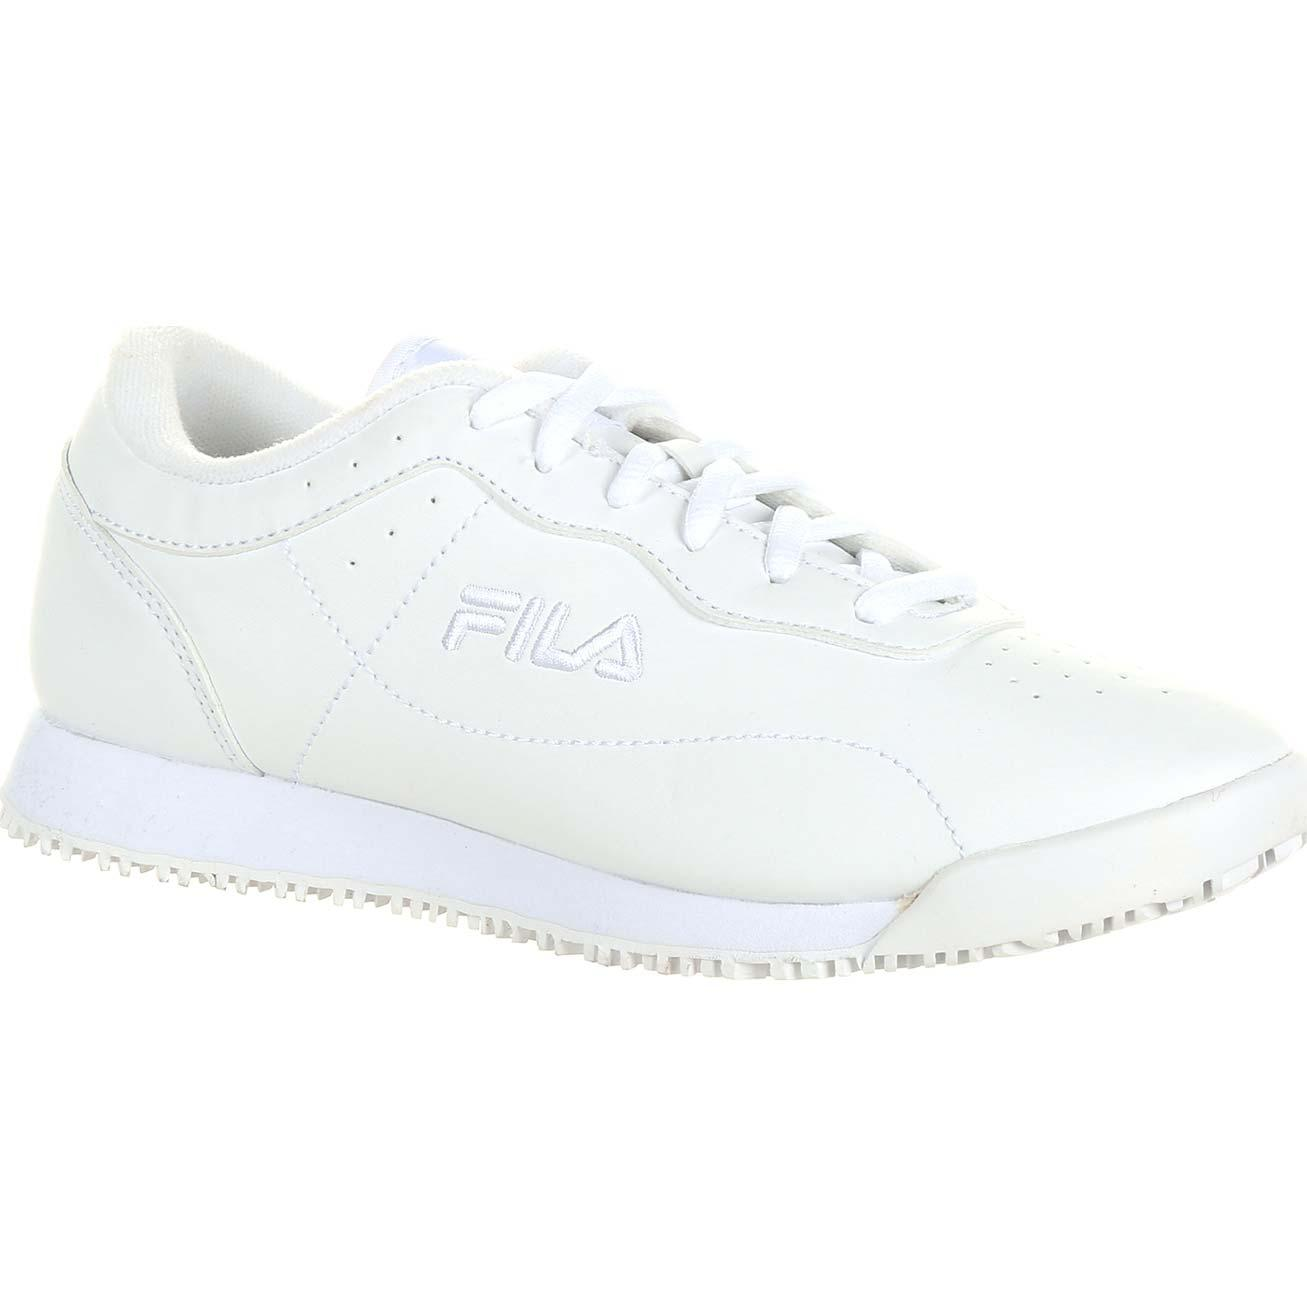 08805f4fef Fila Memory Viable Women's Slip-Resistant Work Athletic Shoe